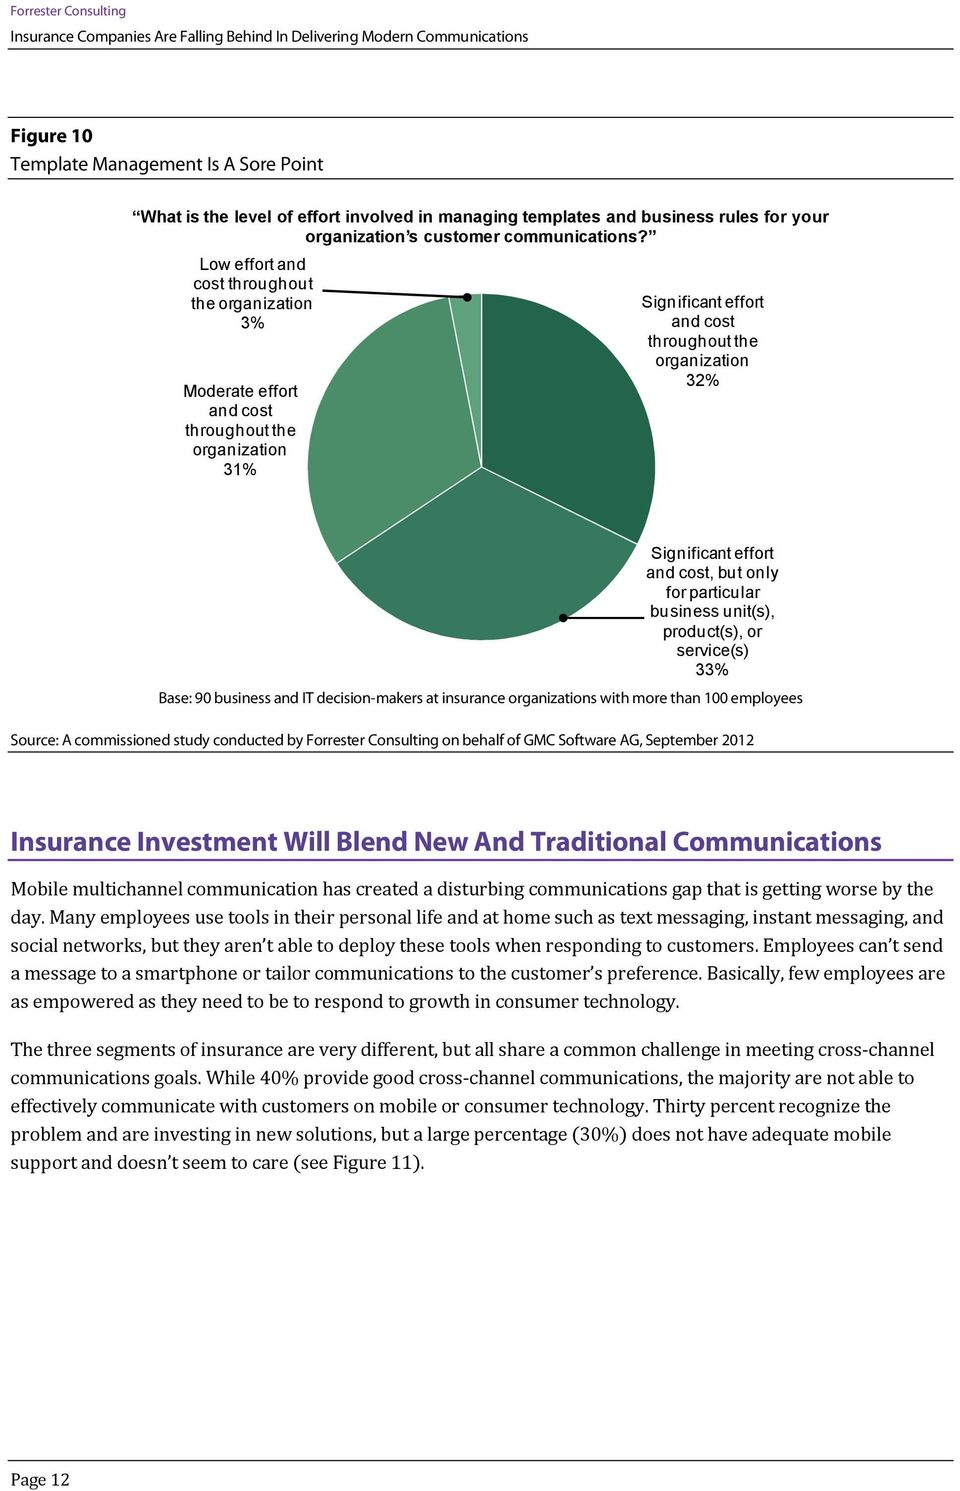 but only for particular business unit(s), product(s), or service(s) 33% Insurance Investment Will Blend New And Traditional Communications Mobile multichannel communication has created a disturbing